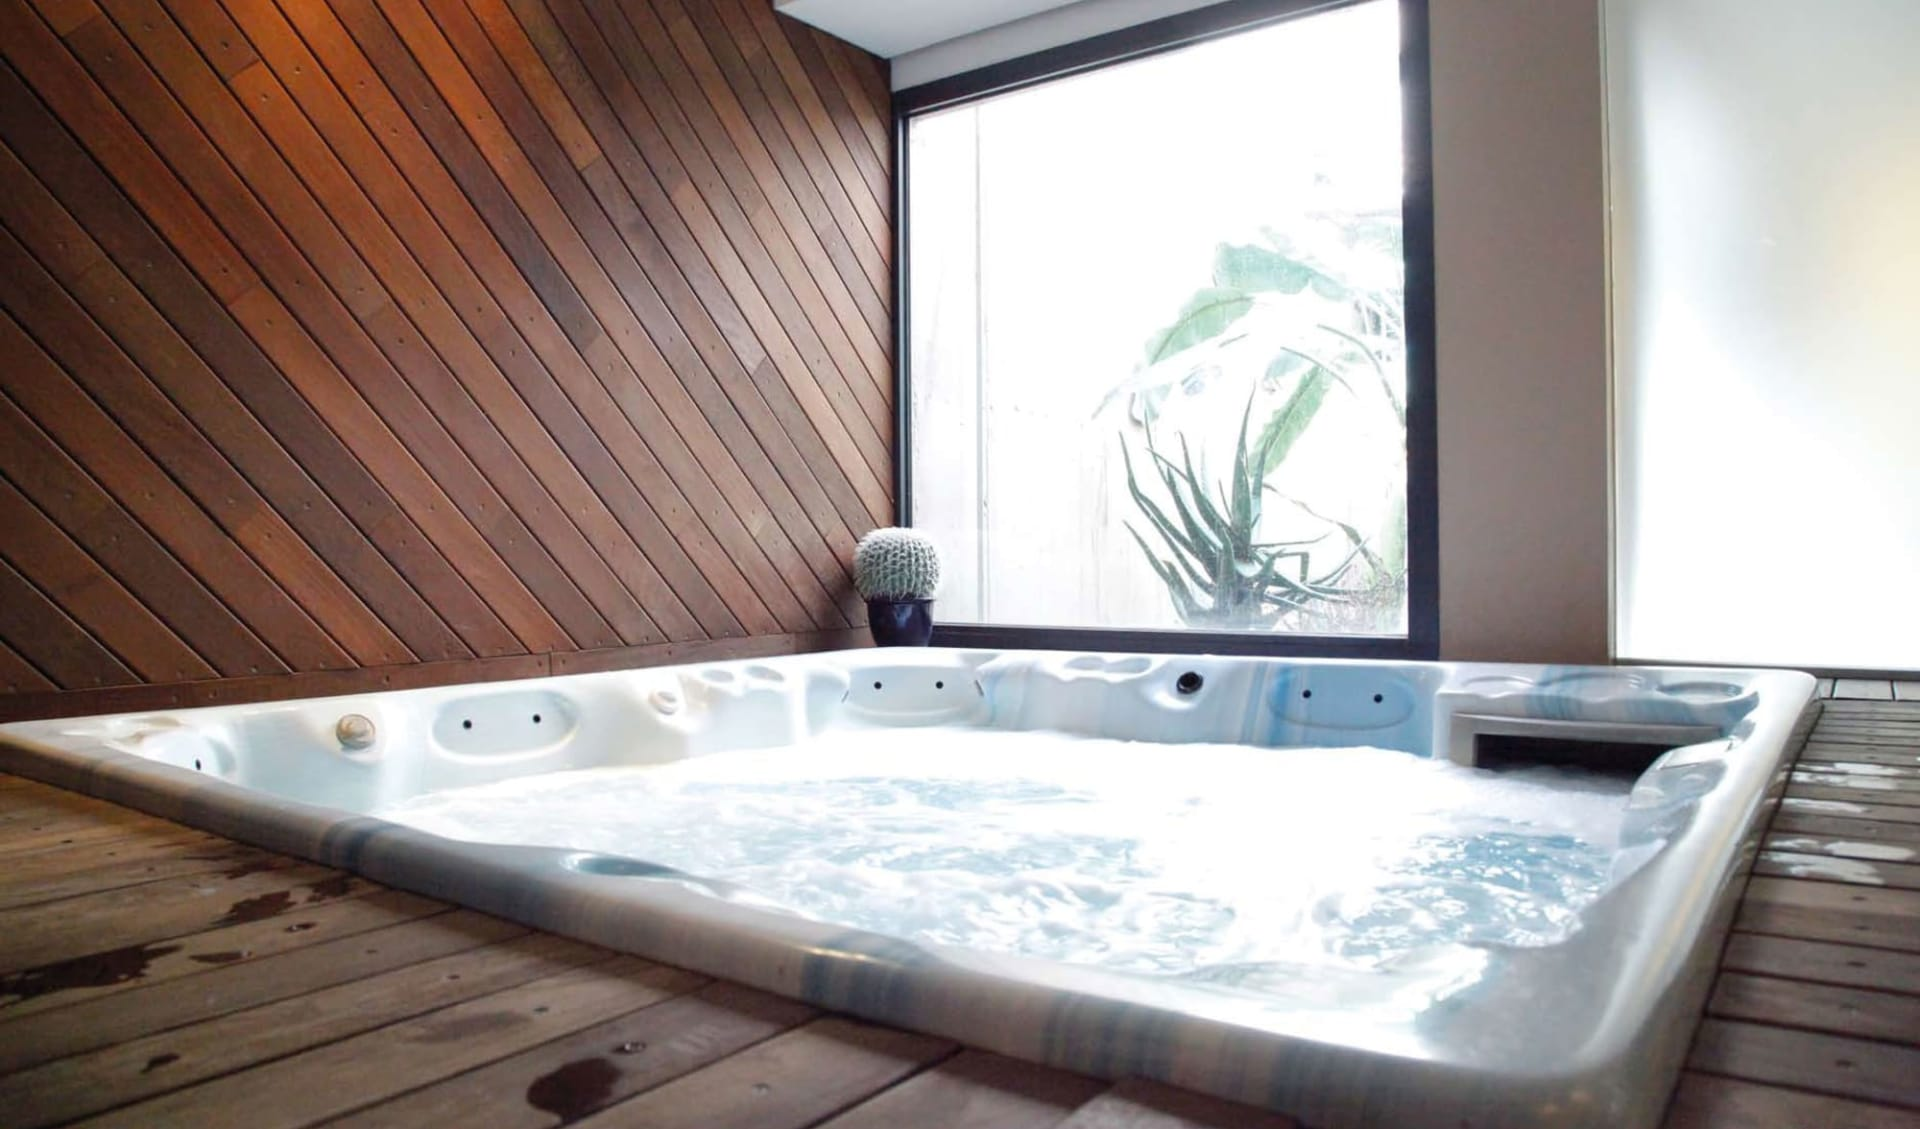 Gardasee - Yachting Hotel Minestral: Jacuzzi